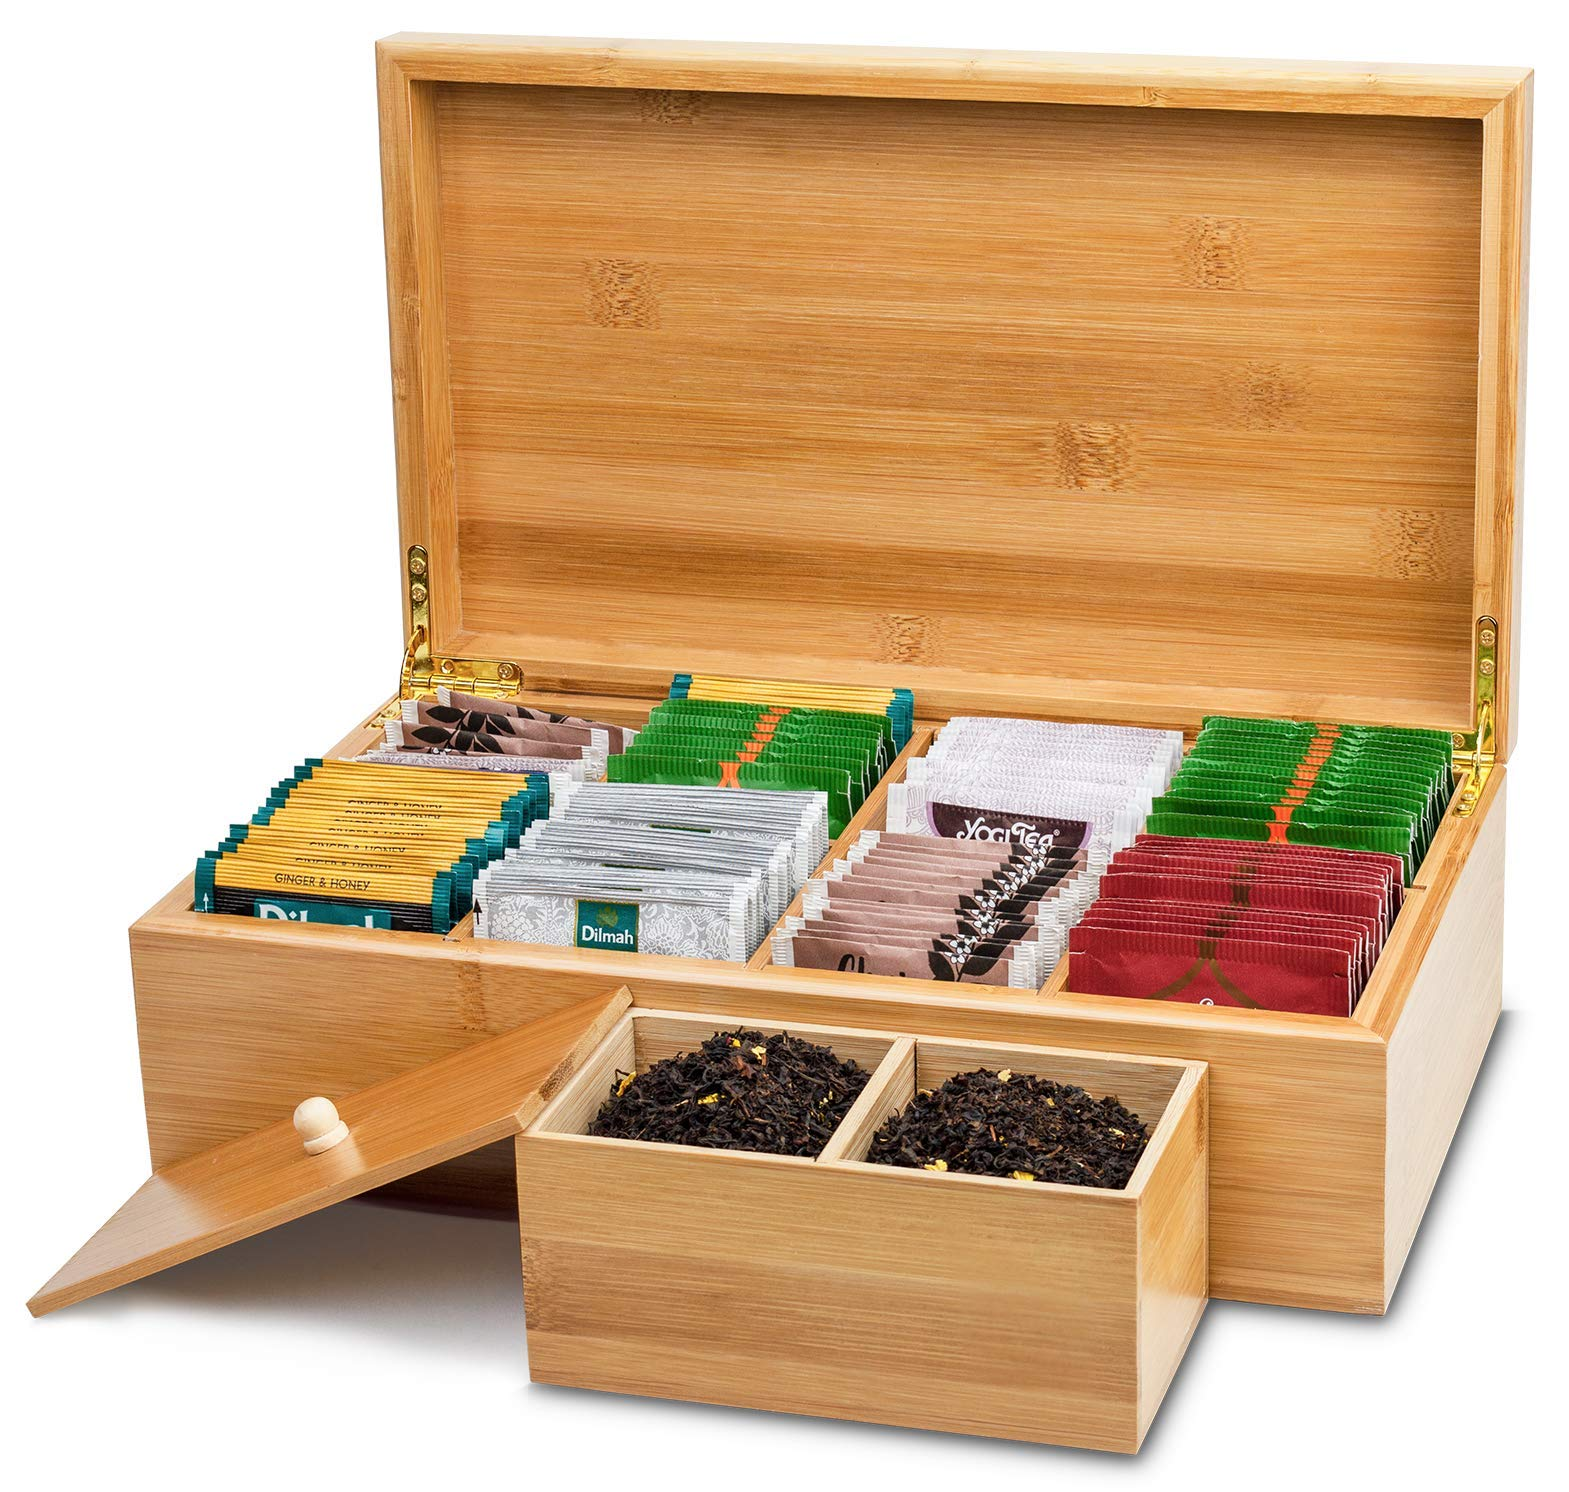 Lyevon Tea Storage Organizer Bamboo Chest Box with 8 Adjustable Compartments for Assorted Tea Bags or Spices -holds 125 Tea Bags by Lyevon (Image #3)